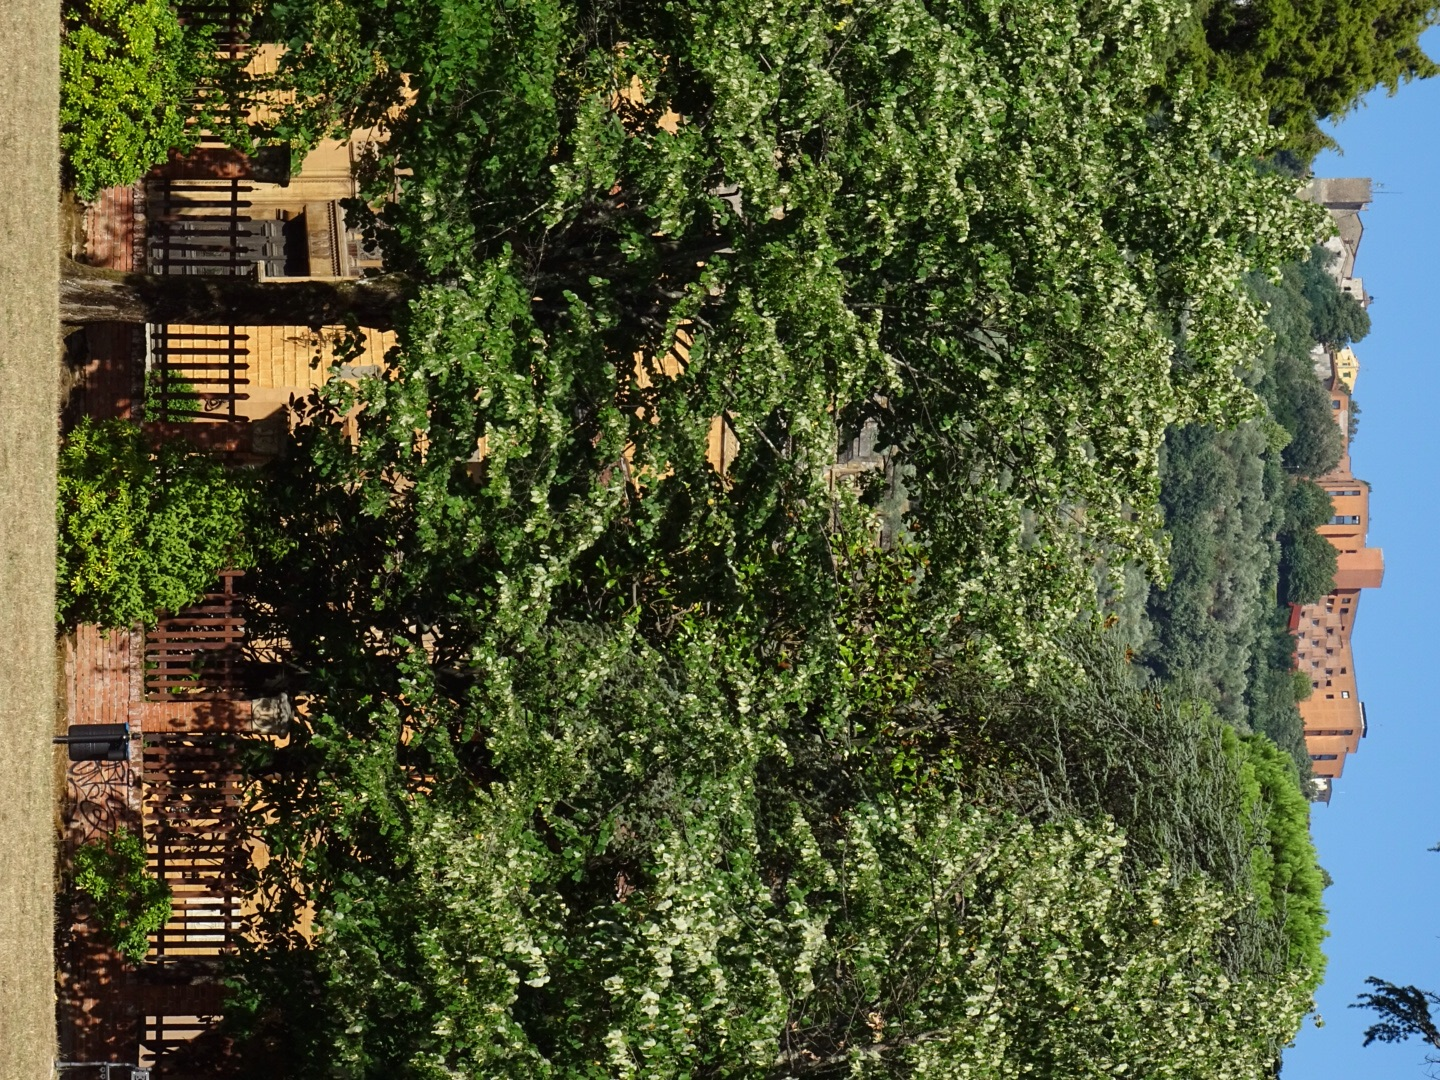 Whilst in the Park we could see Montecatini Alto above the trees. We will be visiting this evening after dinner.